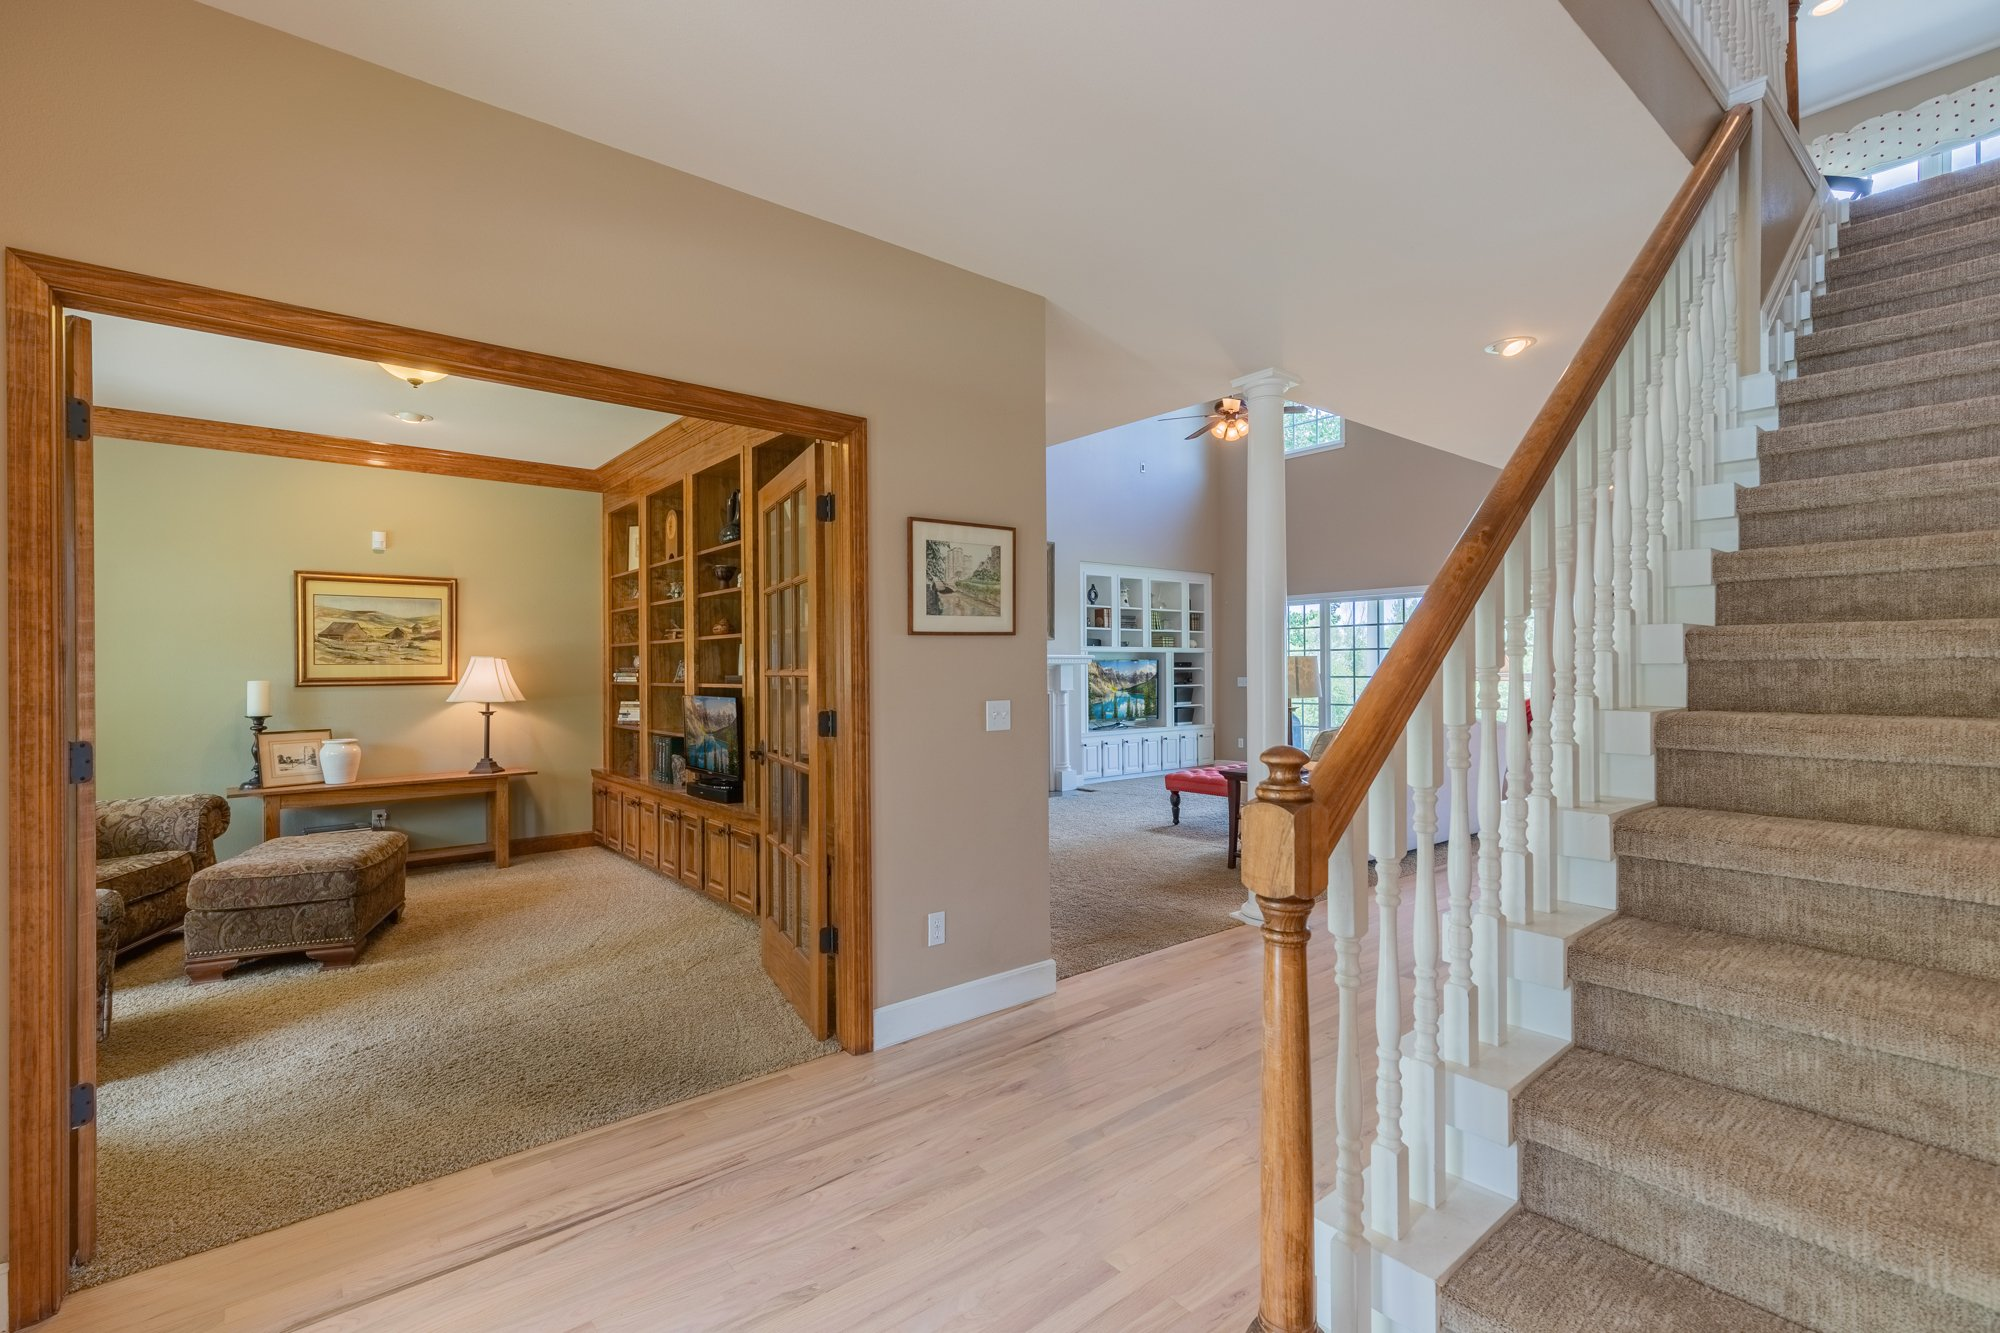 Entry way with Office access - 2049 Brook Way Montrose, Co 81403 - Atha Team Luxury Real Estate